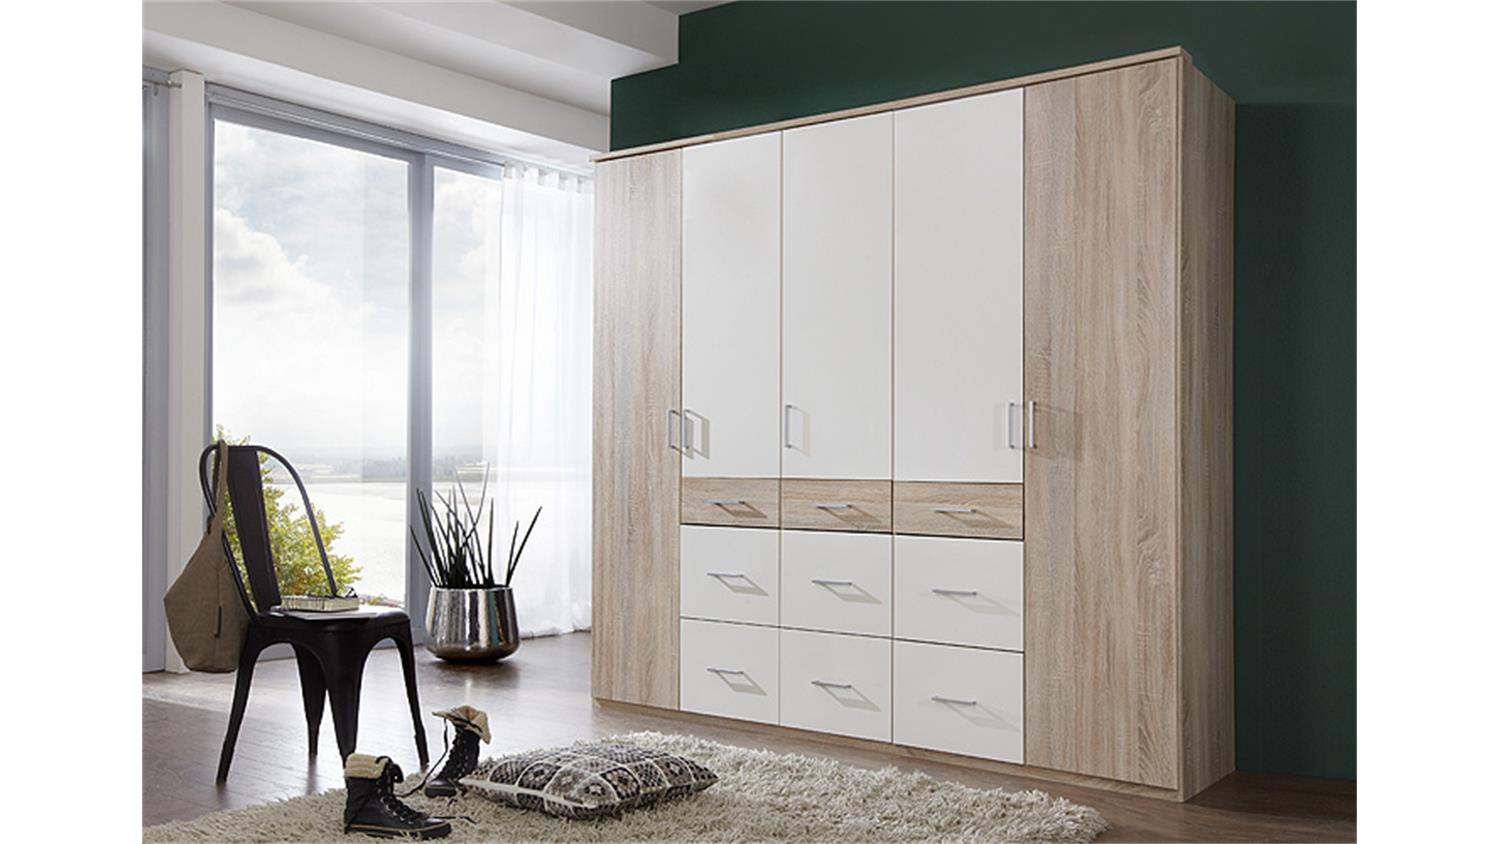 kleiderschrank click 2 sonoma eiche s gerau wei 225. Black Bedroom Furniture Sets. Home Design Ideas